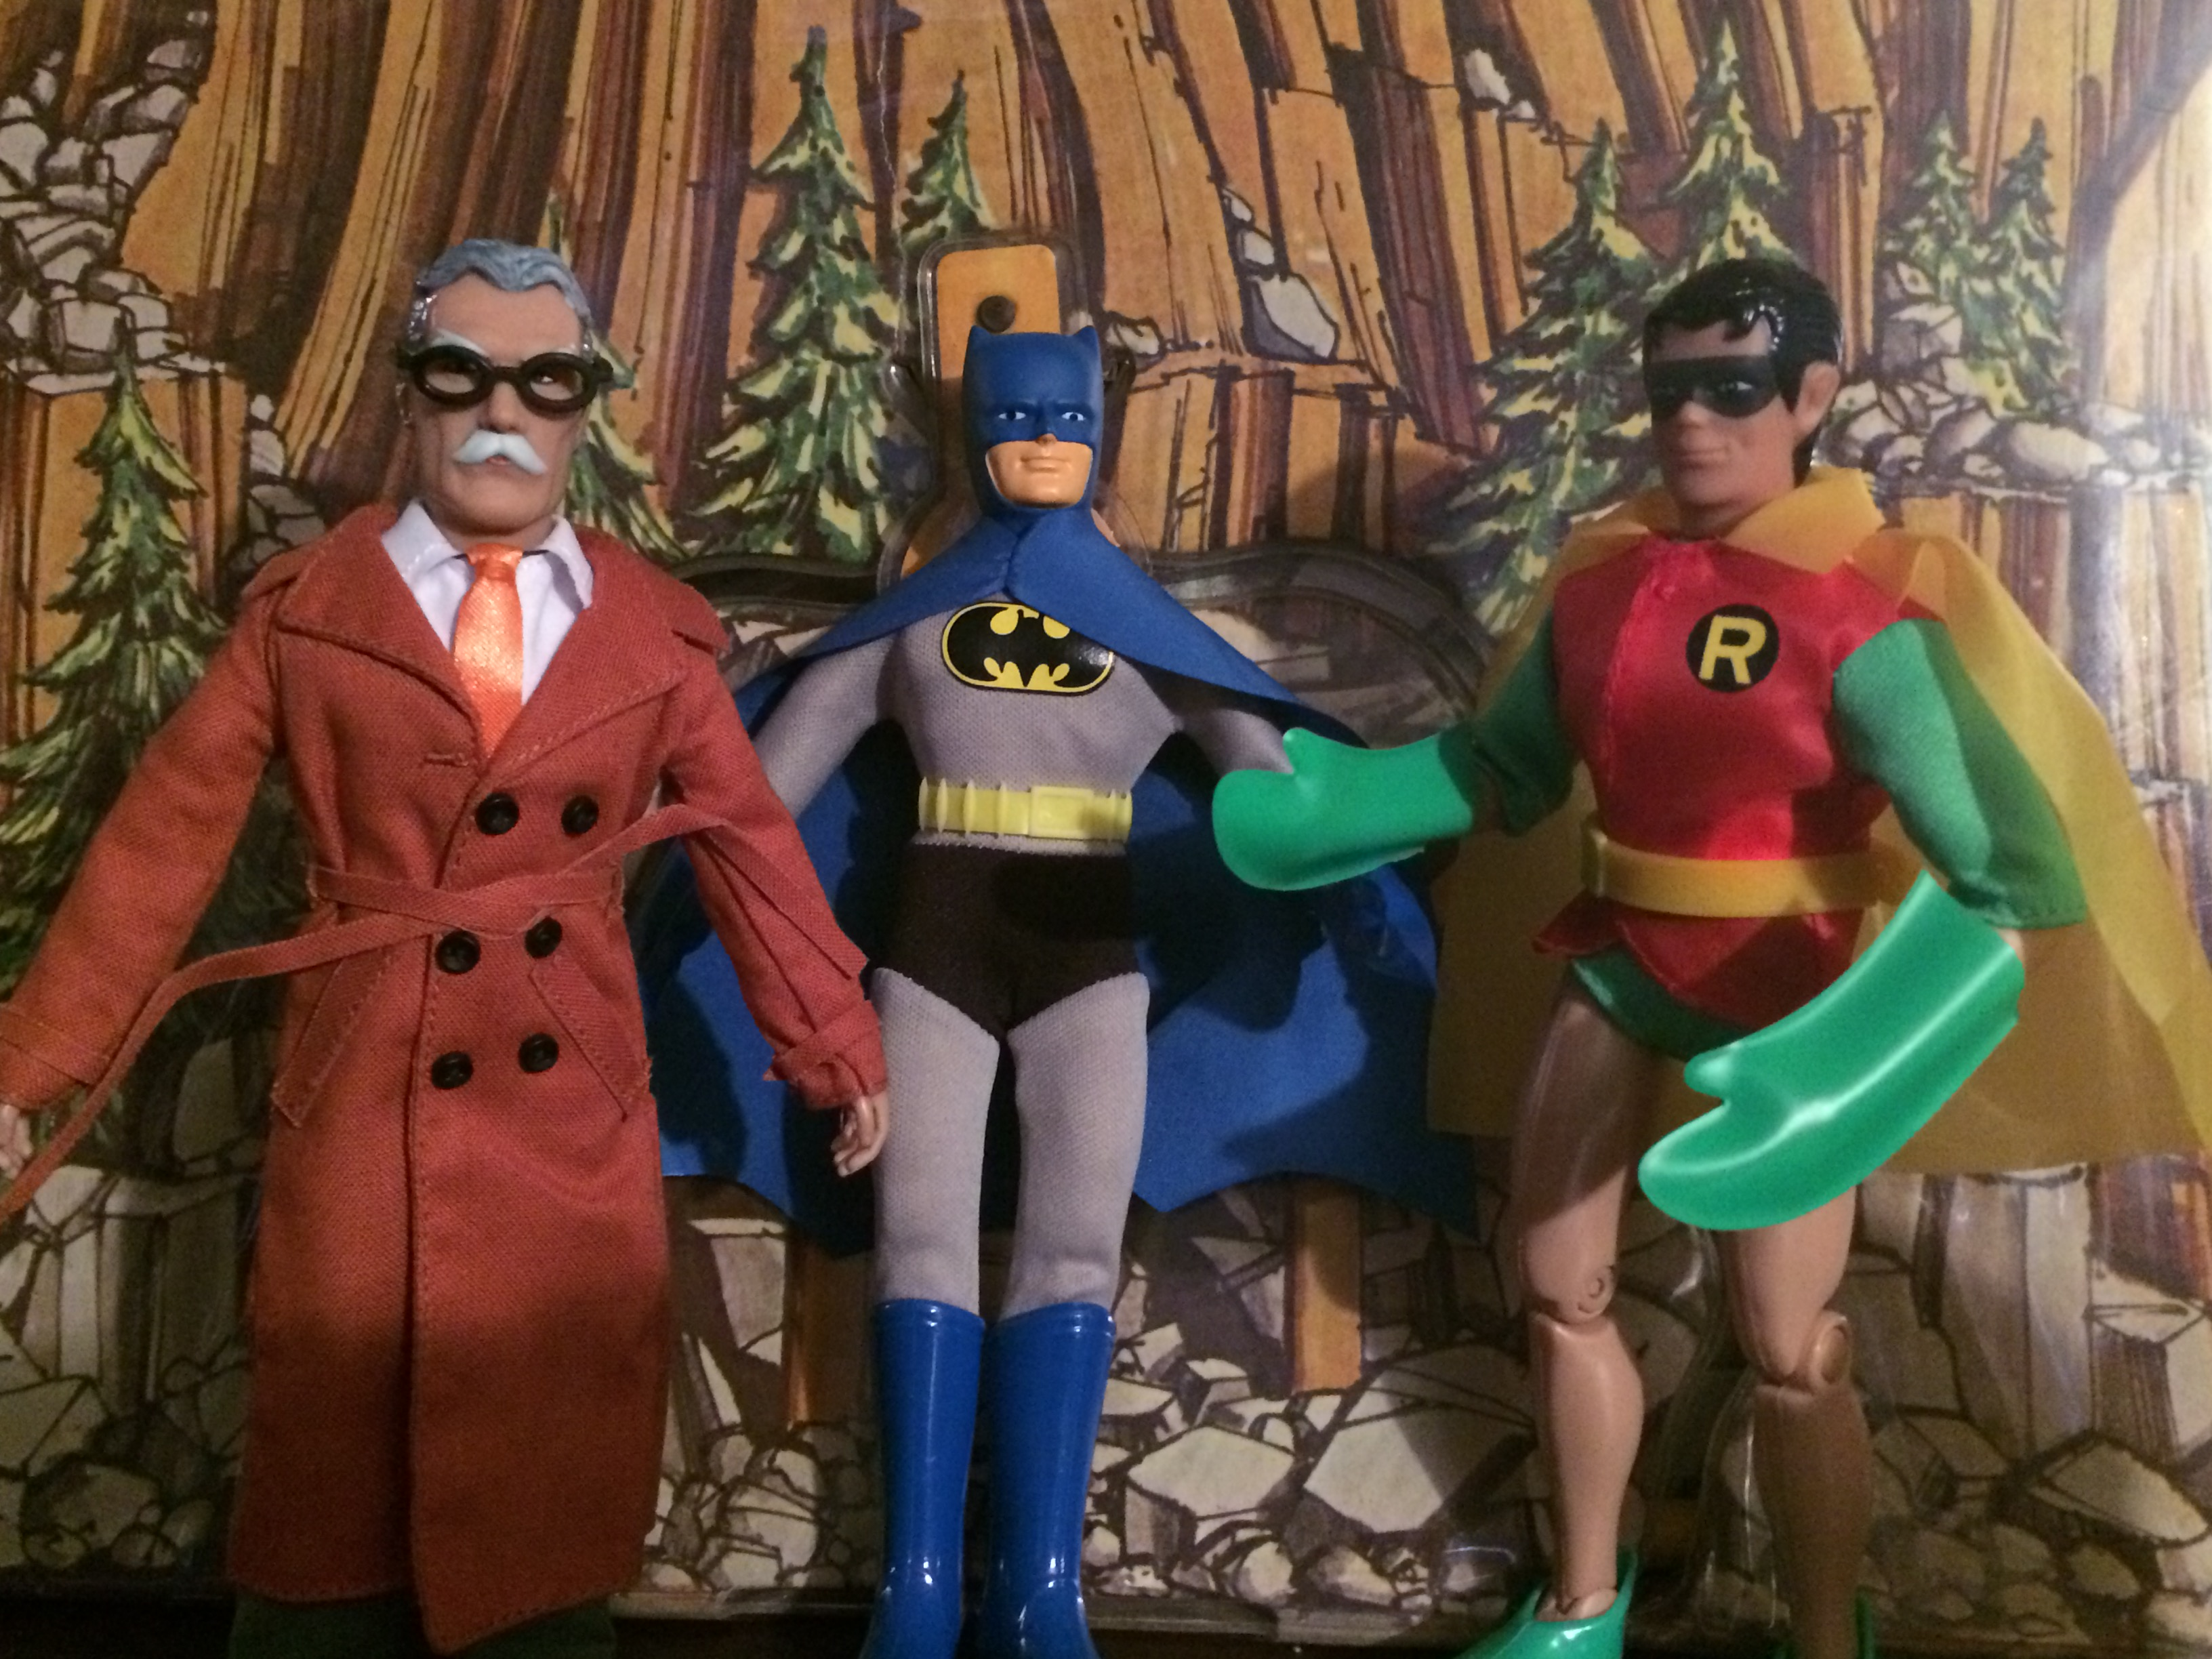 Gordon consults with Batman and Robin!